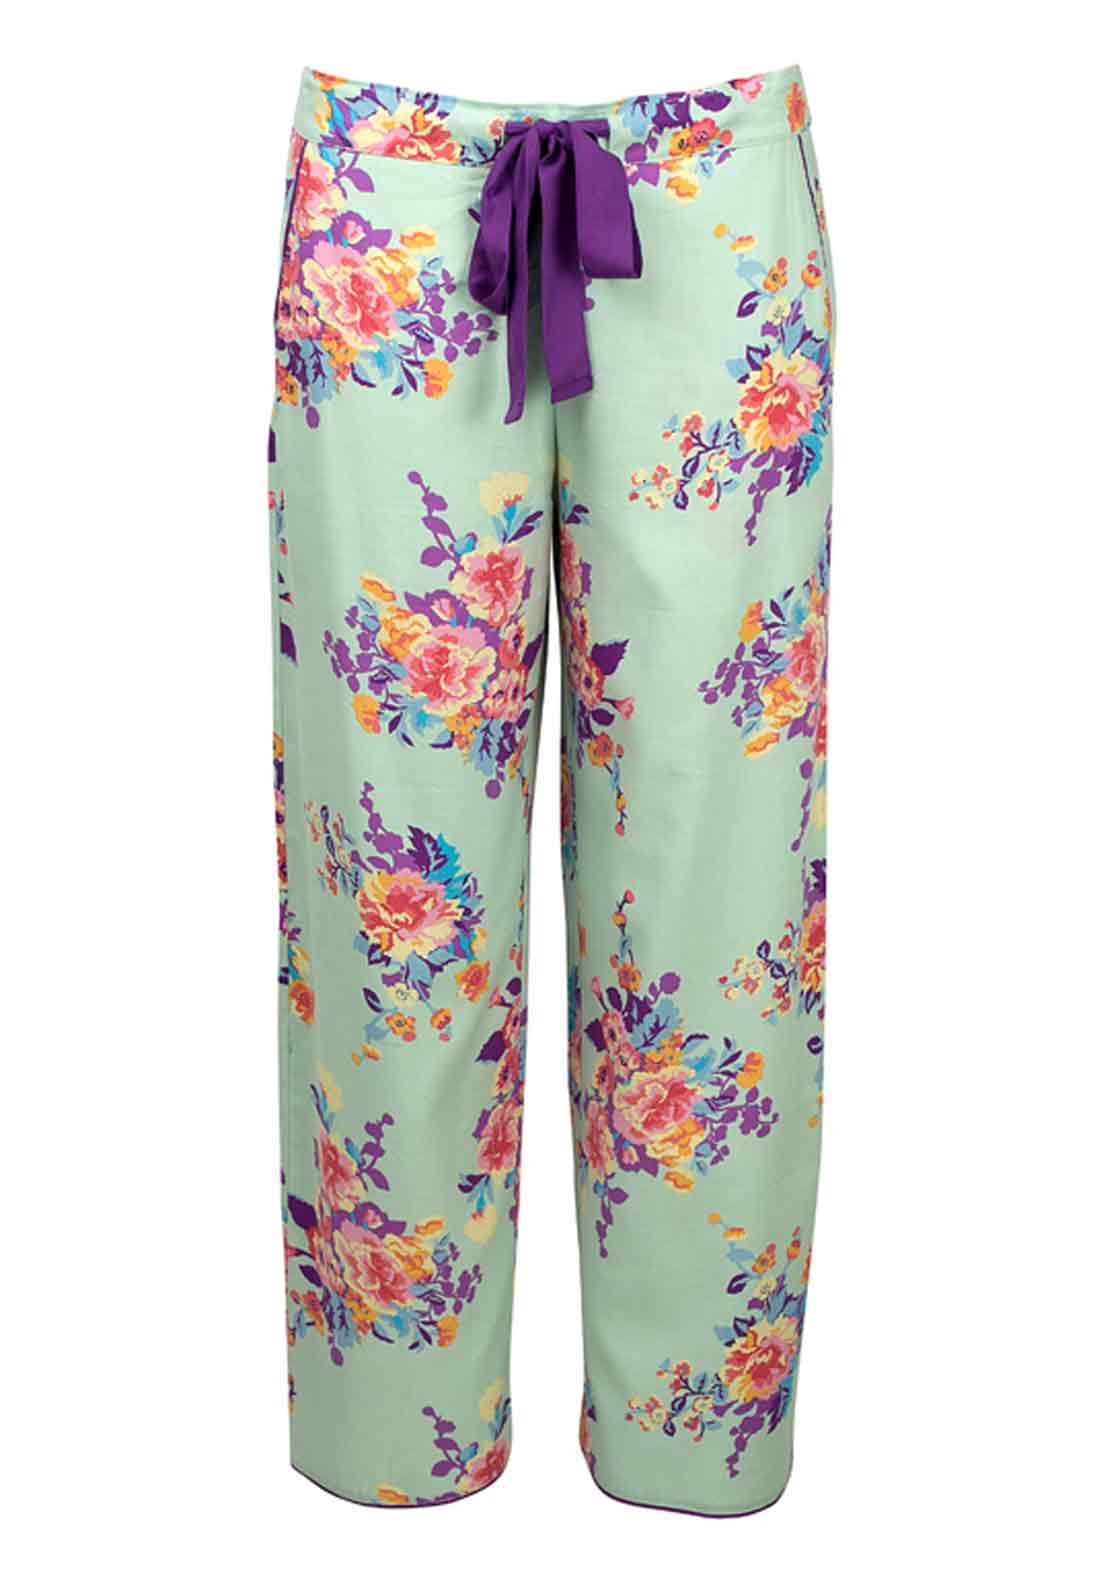 Cyberjammies Waterlily at Dusk Floral Print Pyjama Bottoms, Aqua Floral